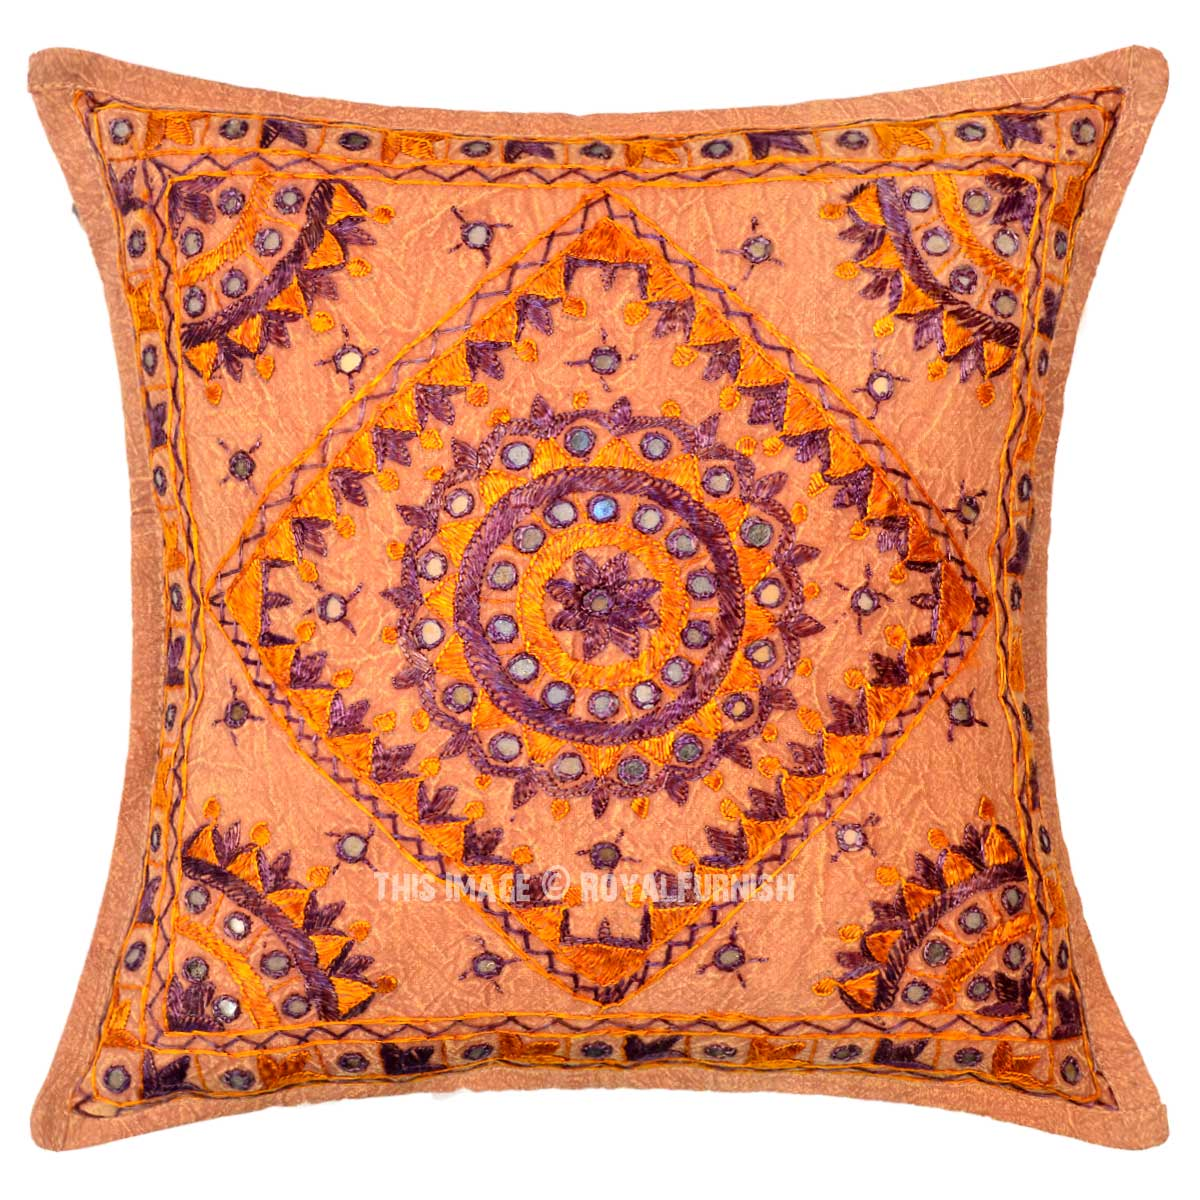 Decorative Pillow Brown : Brown Multi Small Mirrored Embroidered Cotton Throw Pillow Cover 16X16 Inch - RoyalFurnish.com